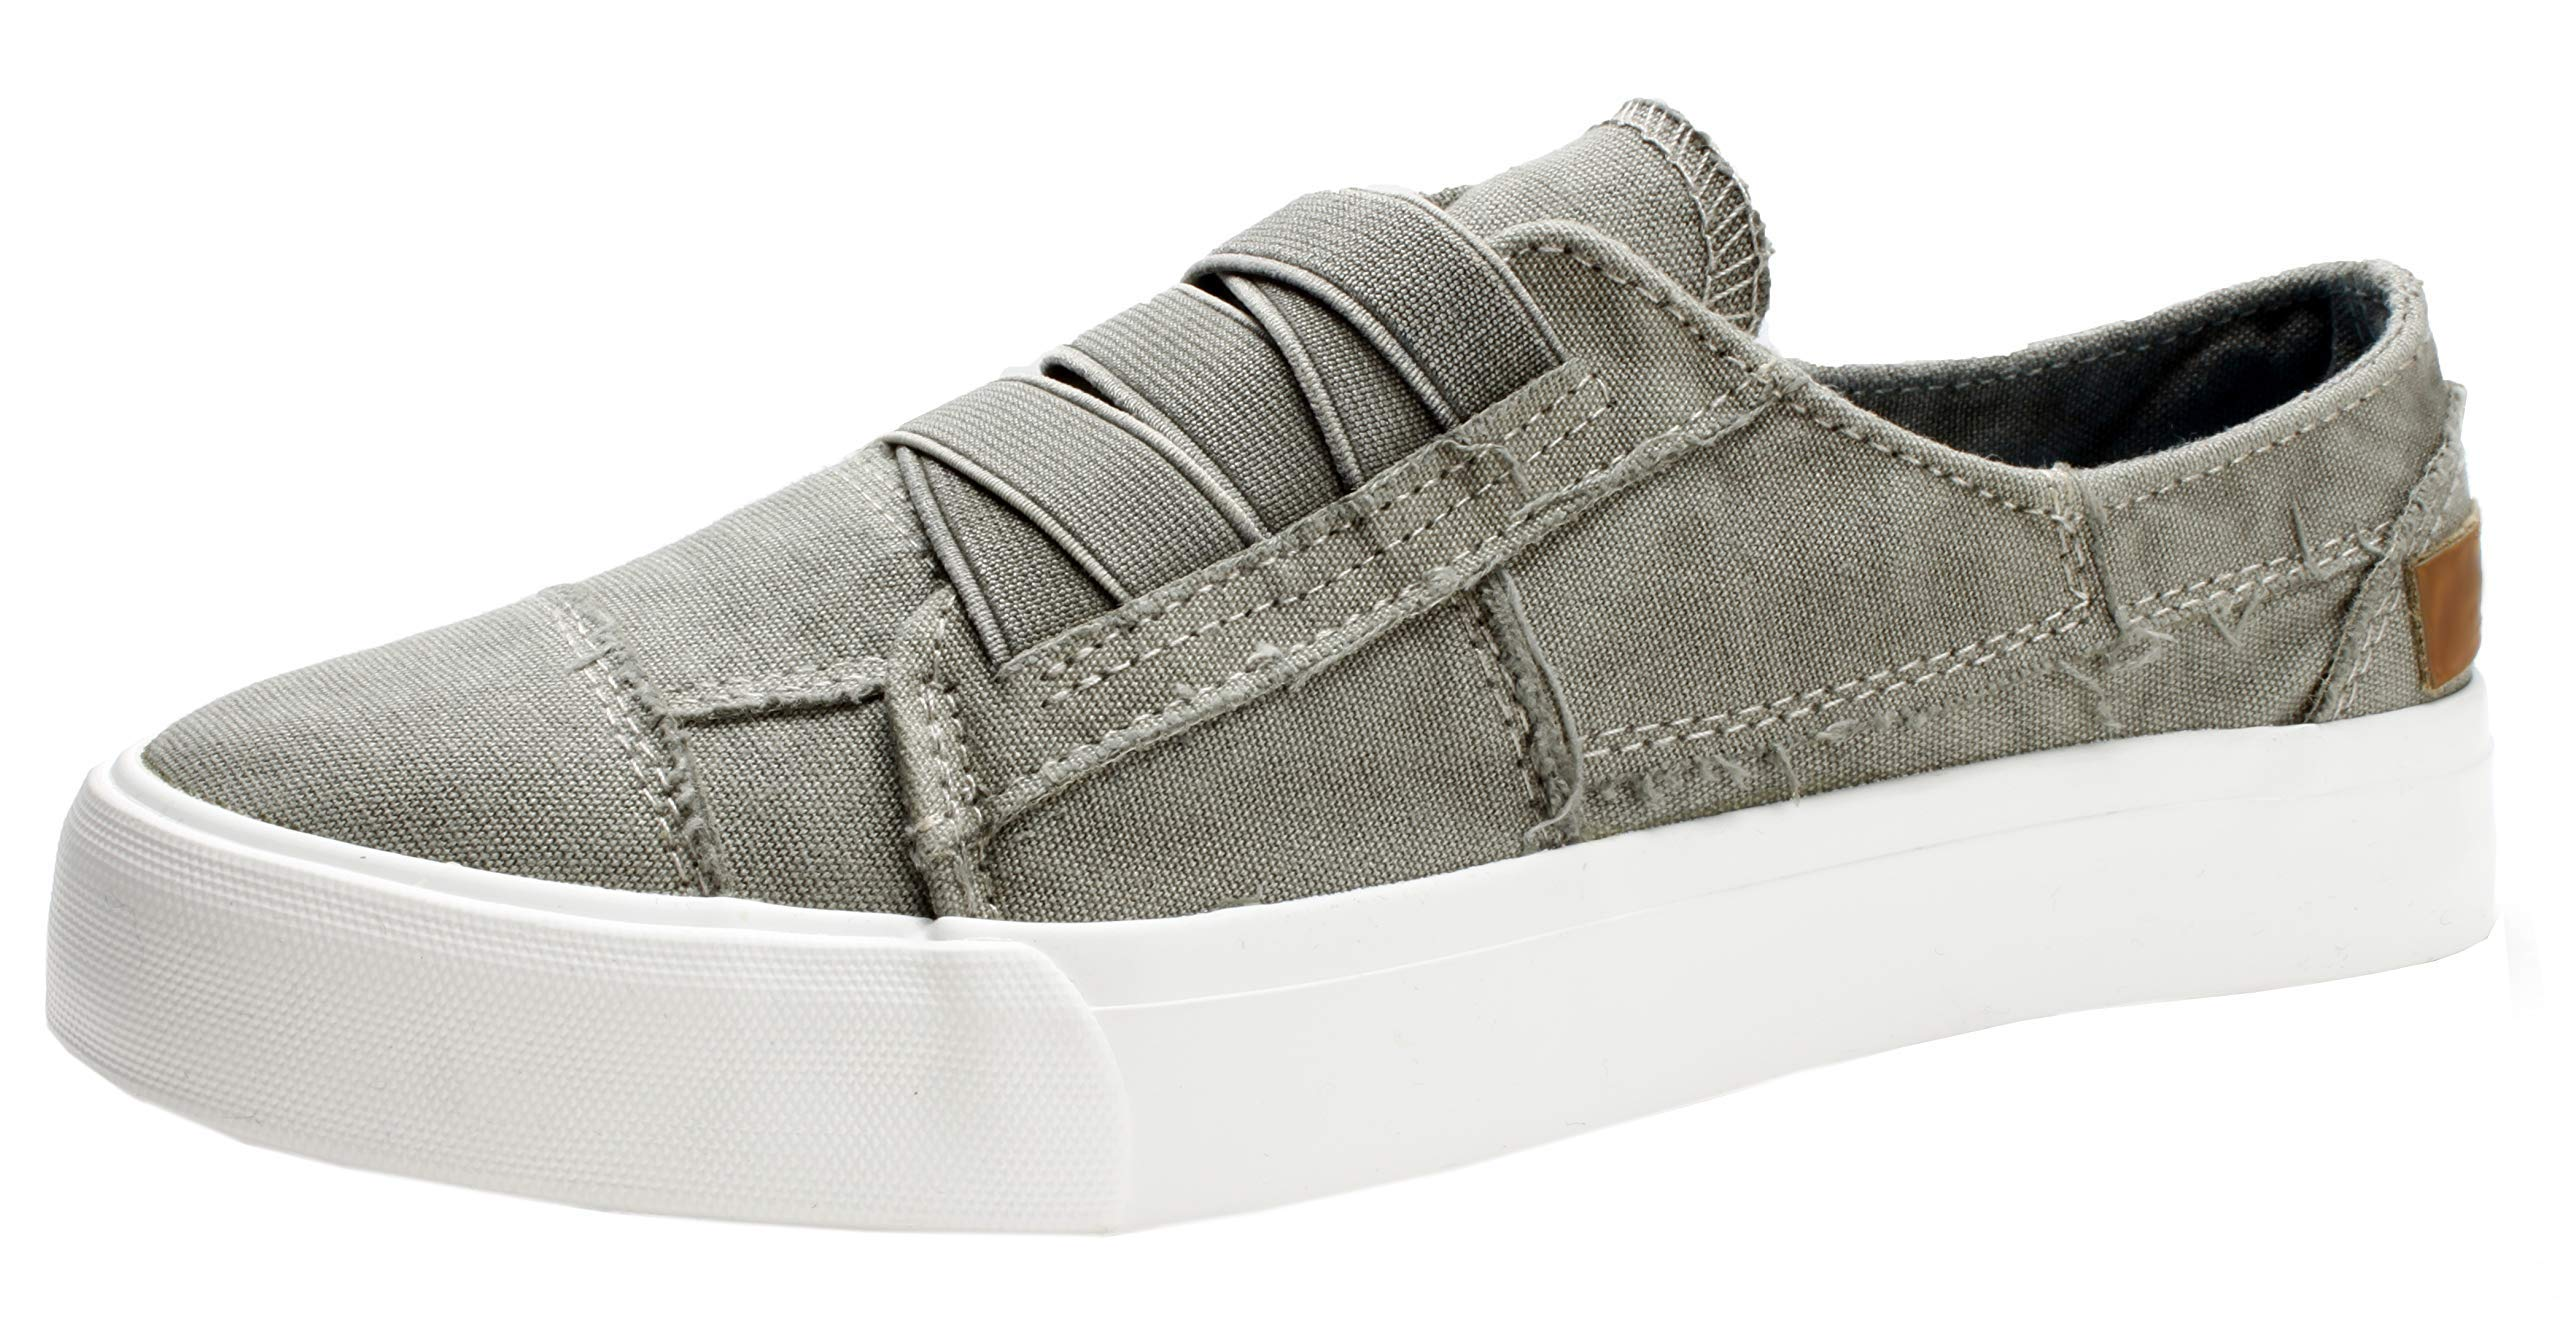 FIRENGOLI Women's Casual Slip On Sneakers Low Top Canvas Shoes Fashion Comfortable Flat Shoes